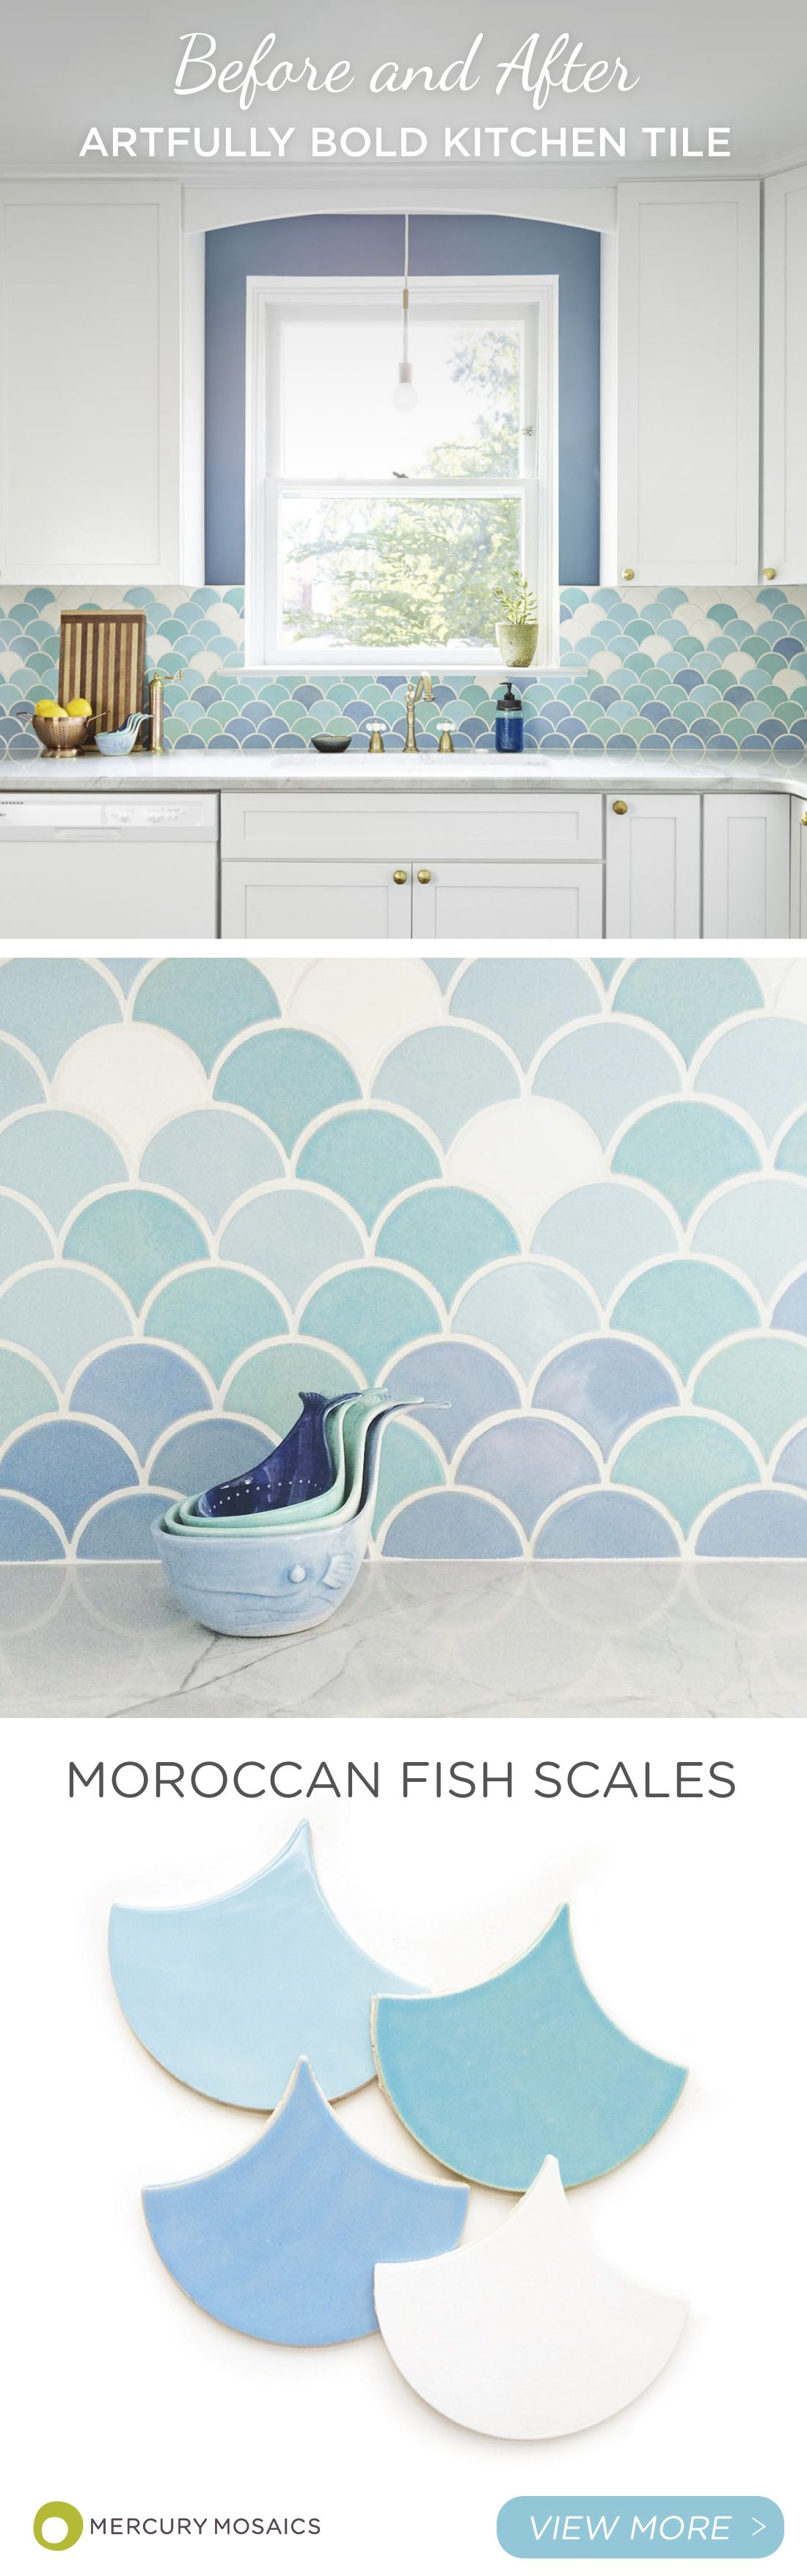 Before and After: Artfully Bold Kitchen Tile on Homepolish   Jealous ...